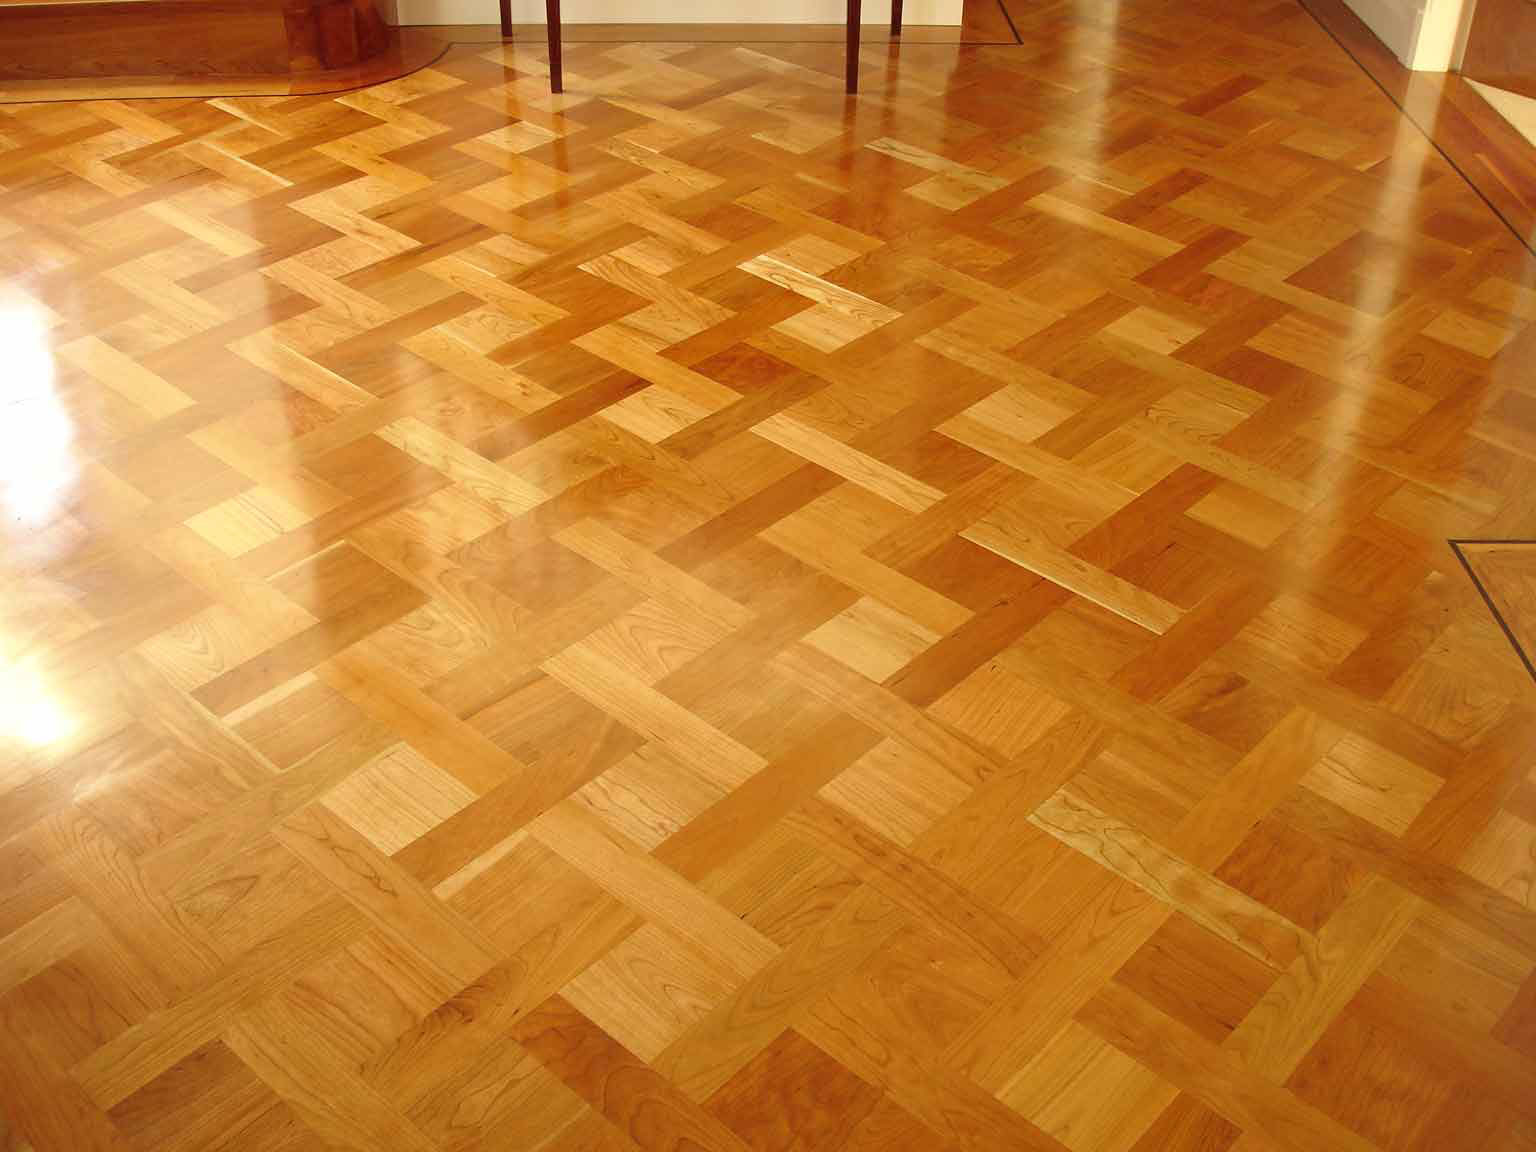 Wood Flooring Ideas Design Wood Flooring Ideas Home Trendy